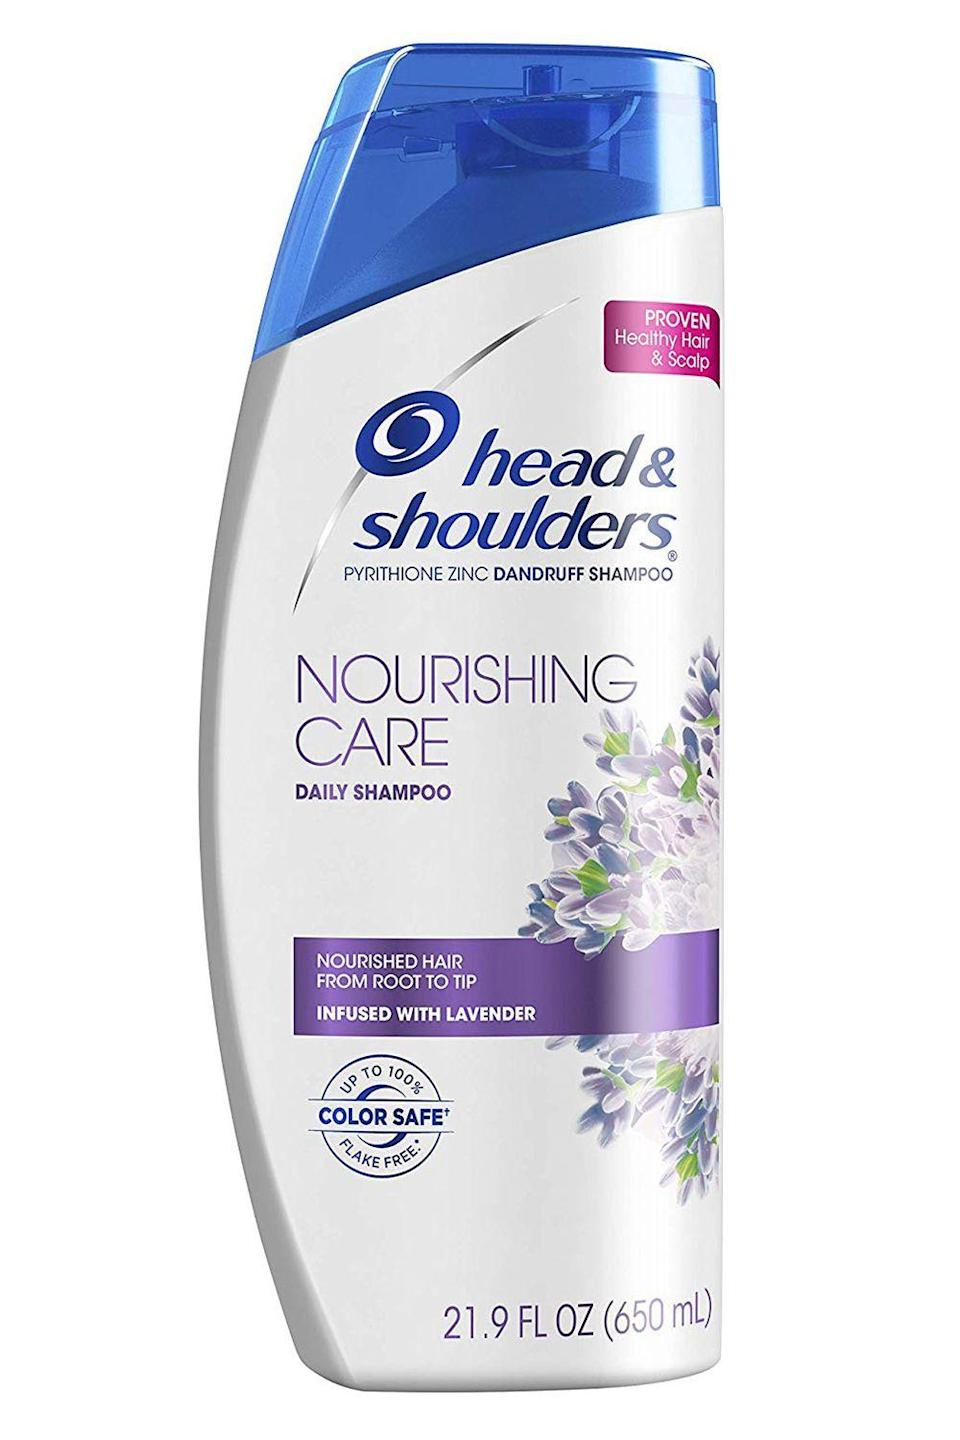 """<p><strong>Head&Shoulder</strong></p><p>amazon.com</p><p><strong>$11.24</strong></p><p><a href=""""https://www.amazon.com/dp/B07LFKRS5K?tag=syn-yahoo-20&ascsubtag=%5Bartid%7C10049.g.20874938%5Bsrc%7Cyahoo-us"""" rel=""""nofollow noopener"""" target=""""_blank"""" data-ylk=""""slk:Shop Now"""" class=""""link rapid-noclick-resp"""">Shop Now</a></p><p>Annoyingly, most <a href=""""https://www.cosmopolitan.com/style-beauty/beauty/g27812780/best-anti-dandruff-shampoo/"""" rel=""""nofollow noopener"""" target=""""_blank"""" data-ylk=""""slk:dandruff shampoos"""" class=""""link rapid-noclick-resp"""">dandruff shampoos</a> leave your hair feeling brittle and straw-like. But this one from Head & Shoulders does the opposite. It has pyrithione zinc to effectively get rid of flakes on your scalp PLUS <strong>nourishing lavender extract to moisturize and smooth damaged hair.</strong> </p>"""